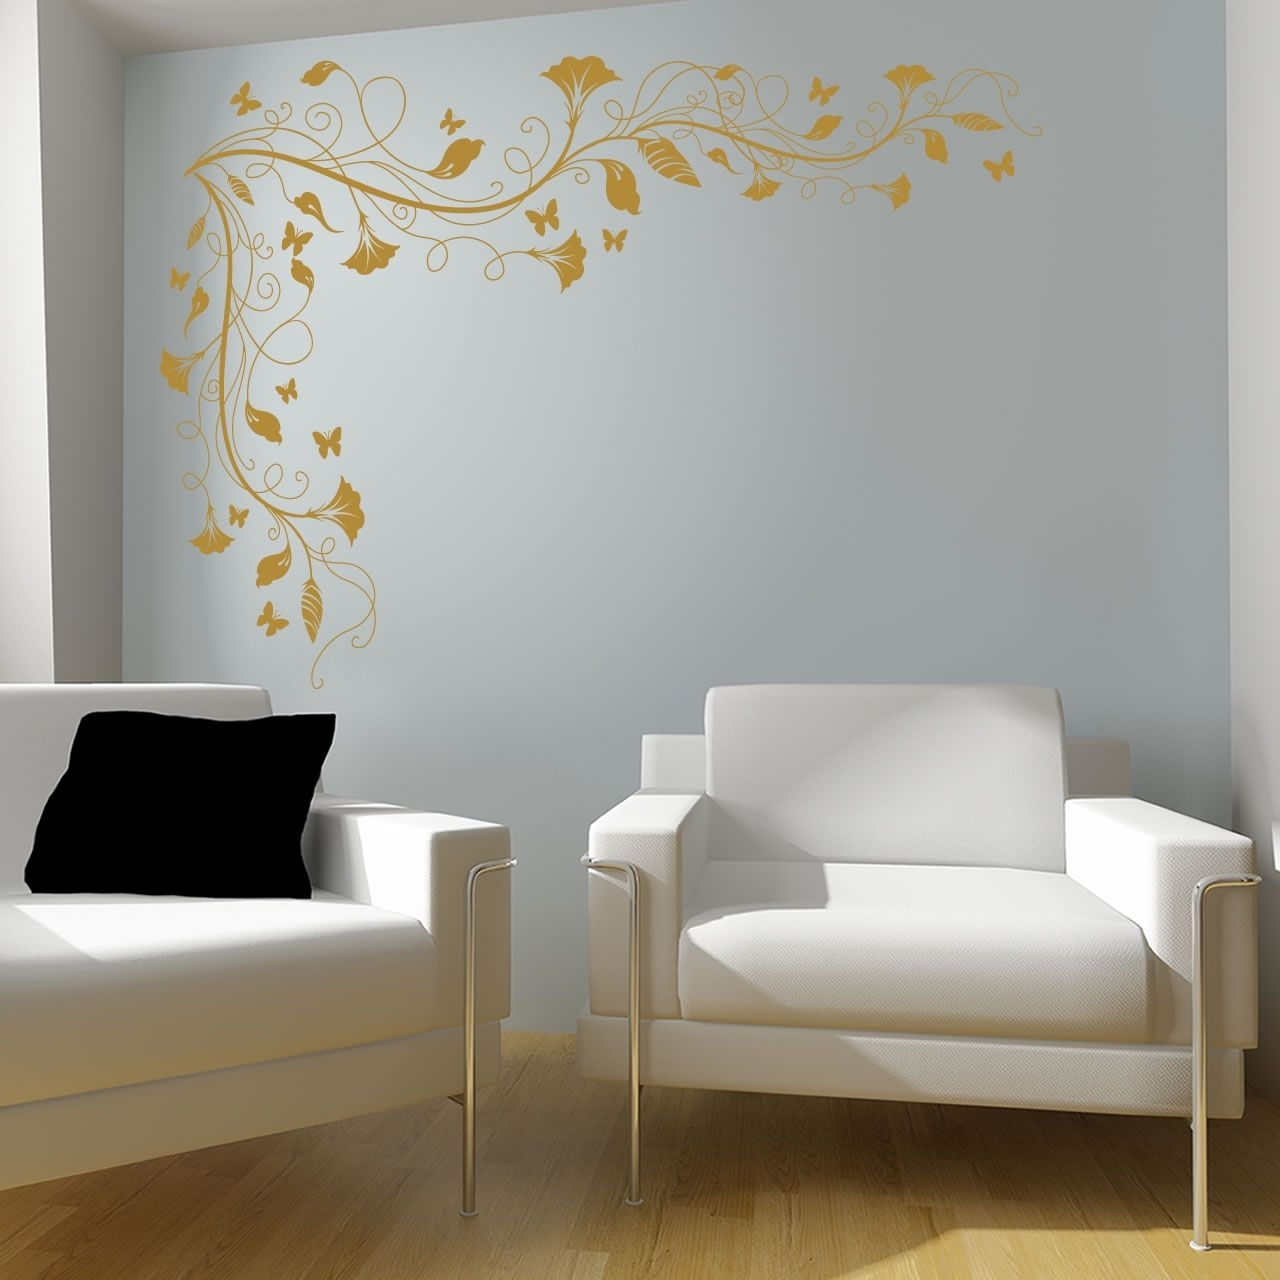 Spartacus Art – Wall Stickers / Decals / Transfers – Vines And Intended For Most Up To Date Corner Wall Art (View 11 of 20)